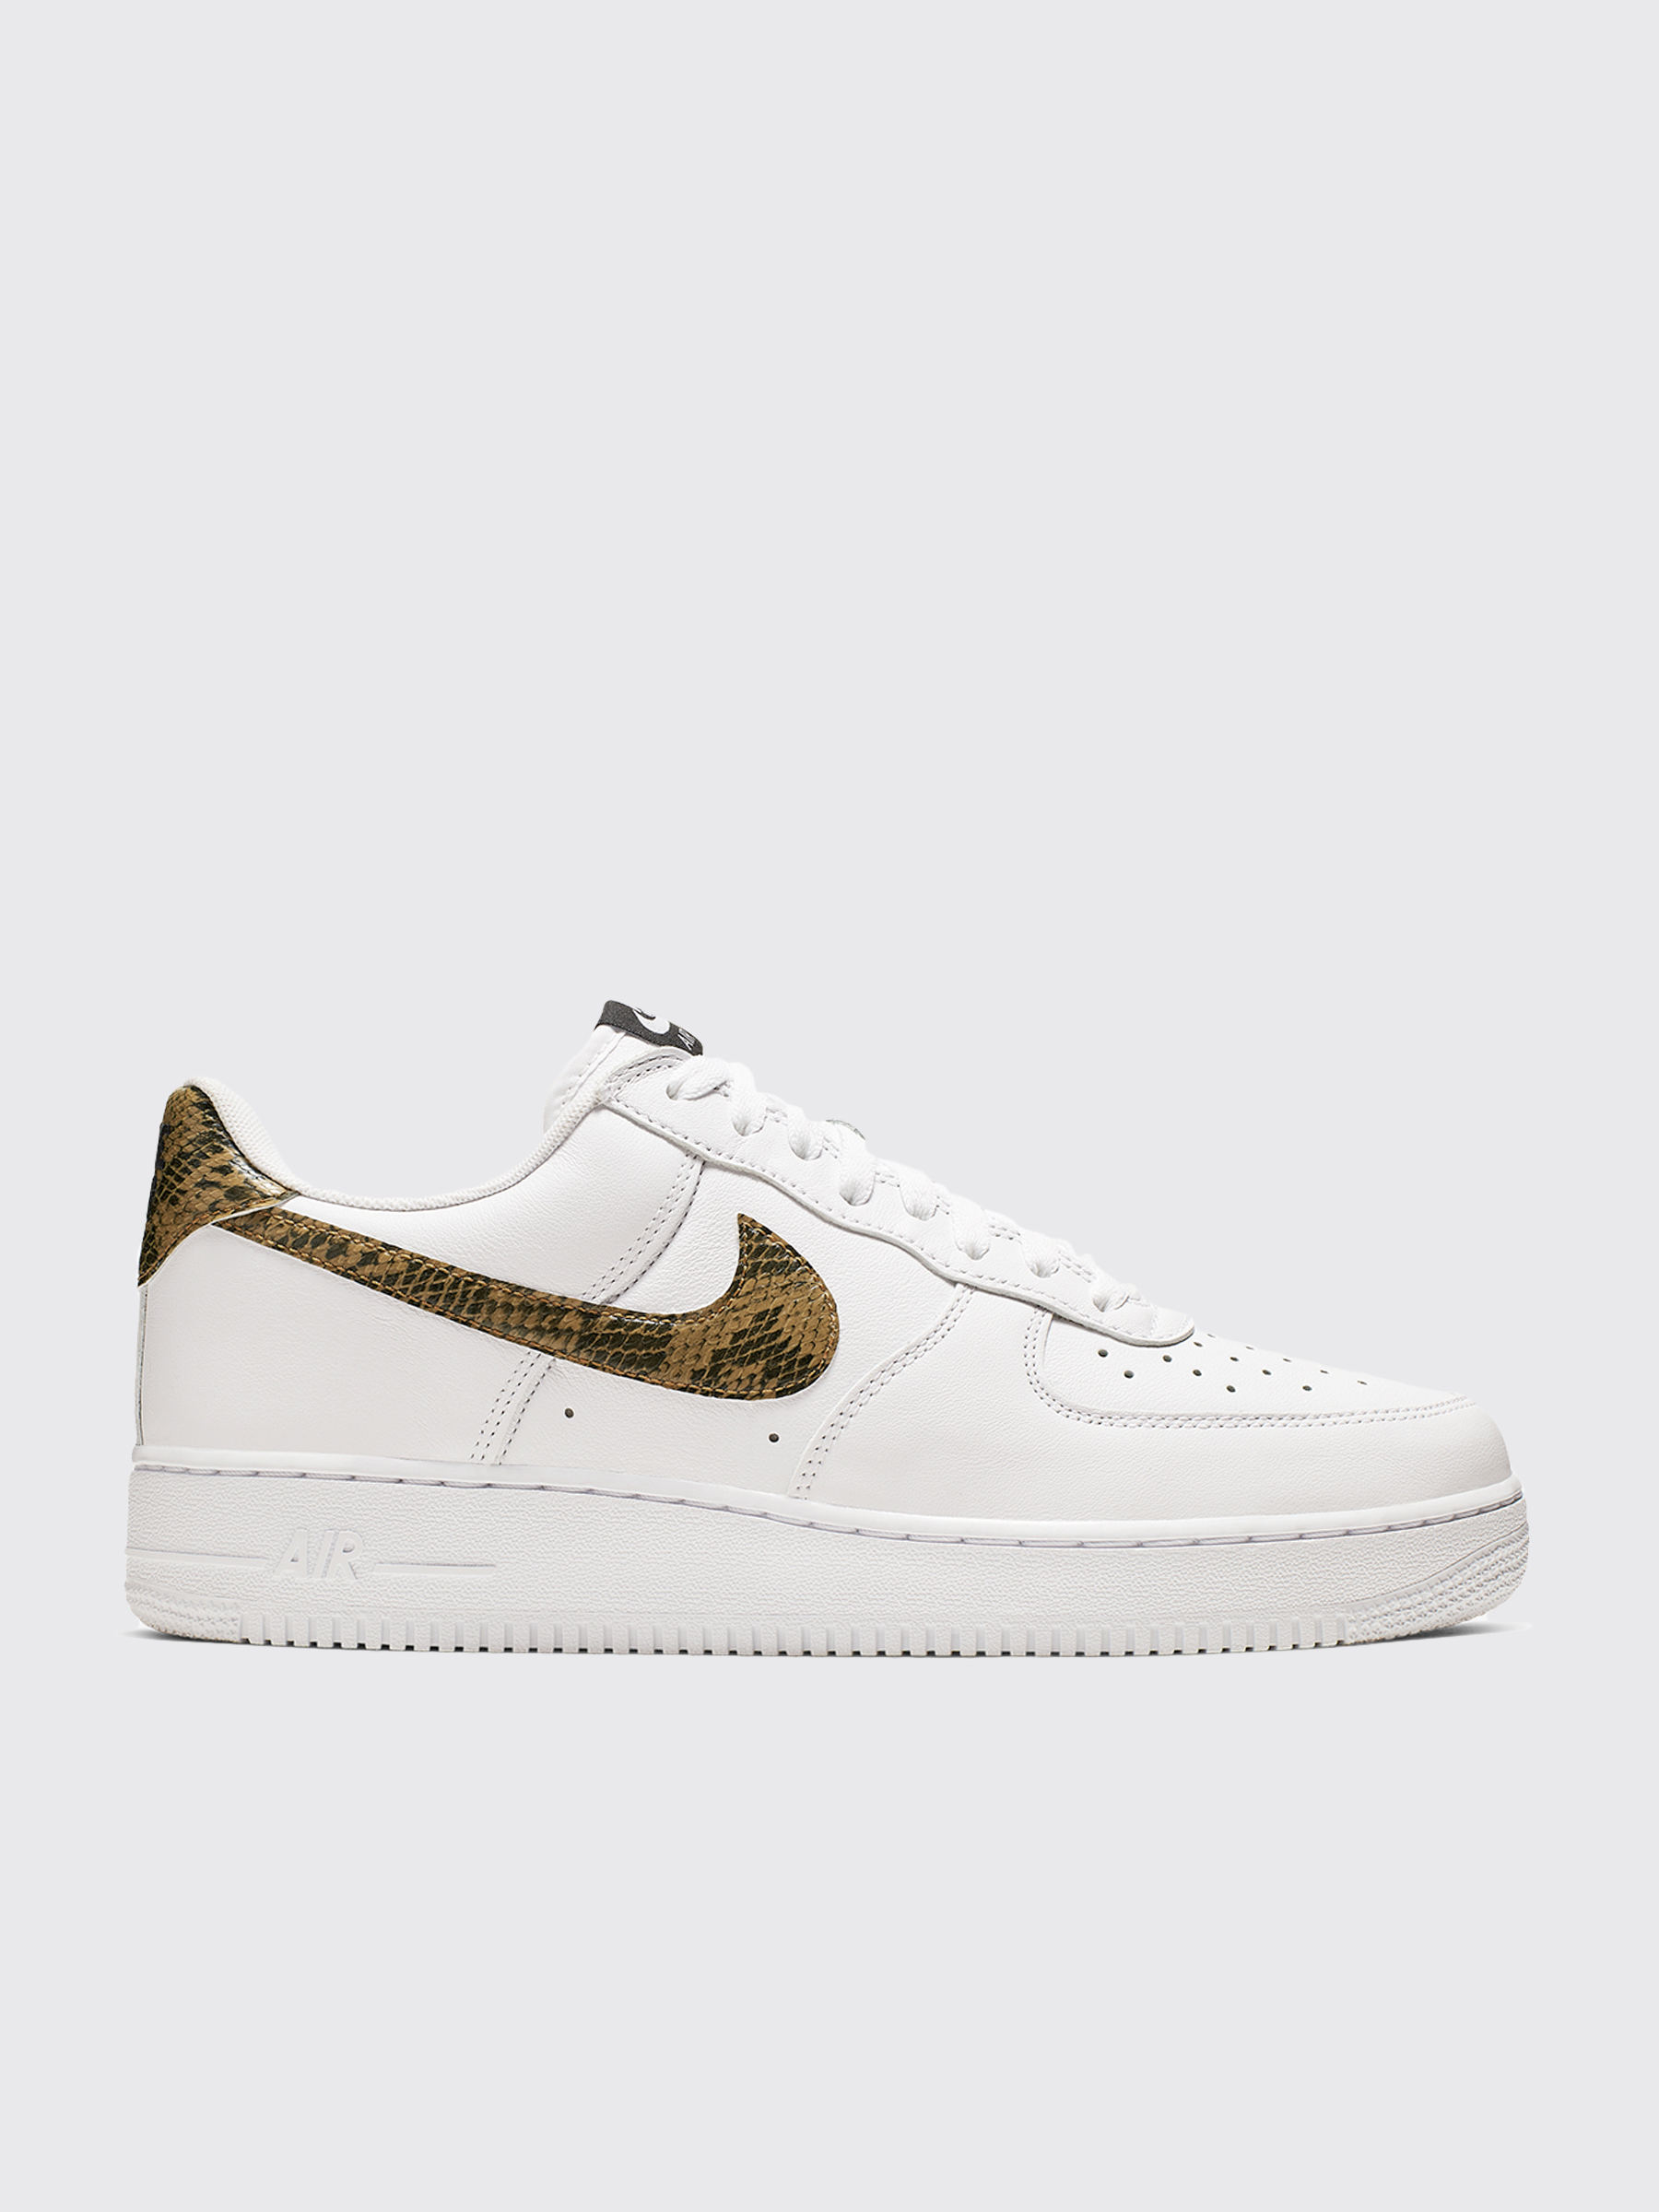 sneakers for cheap 52429 11ec7 Très Bien - Nike Air Force 1 Low Retro PRM QS White   Elemental Gold